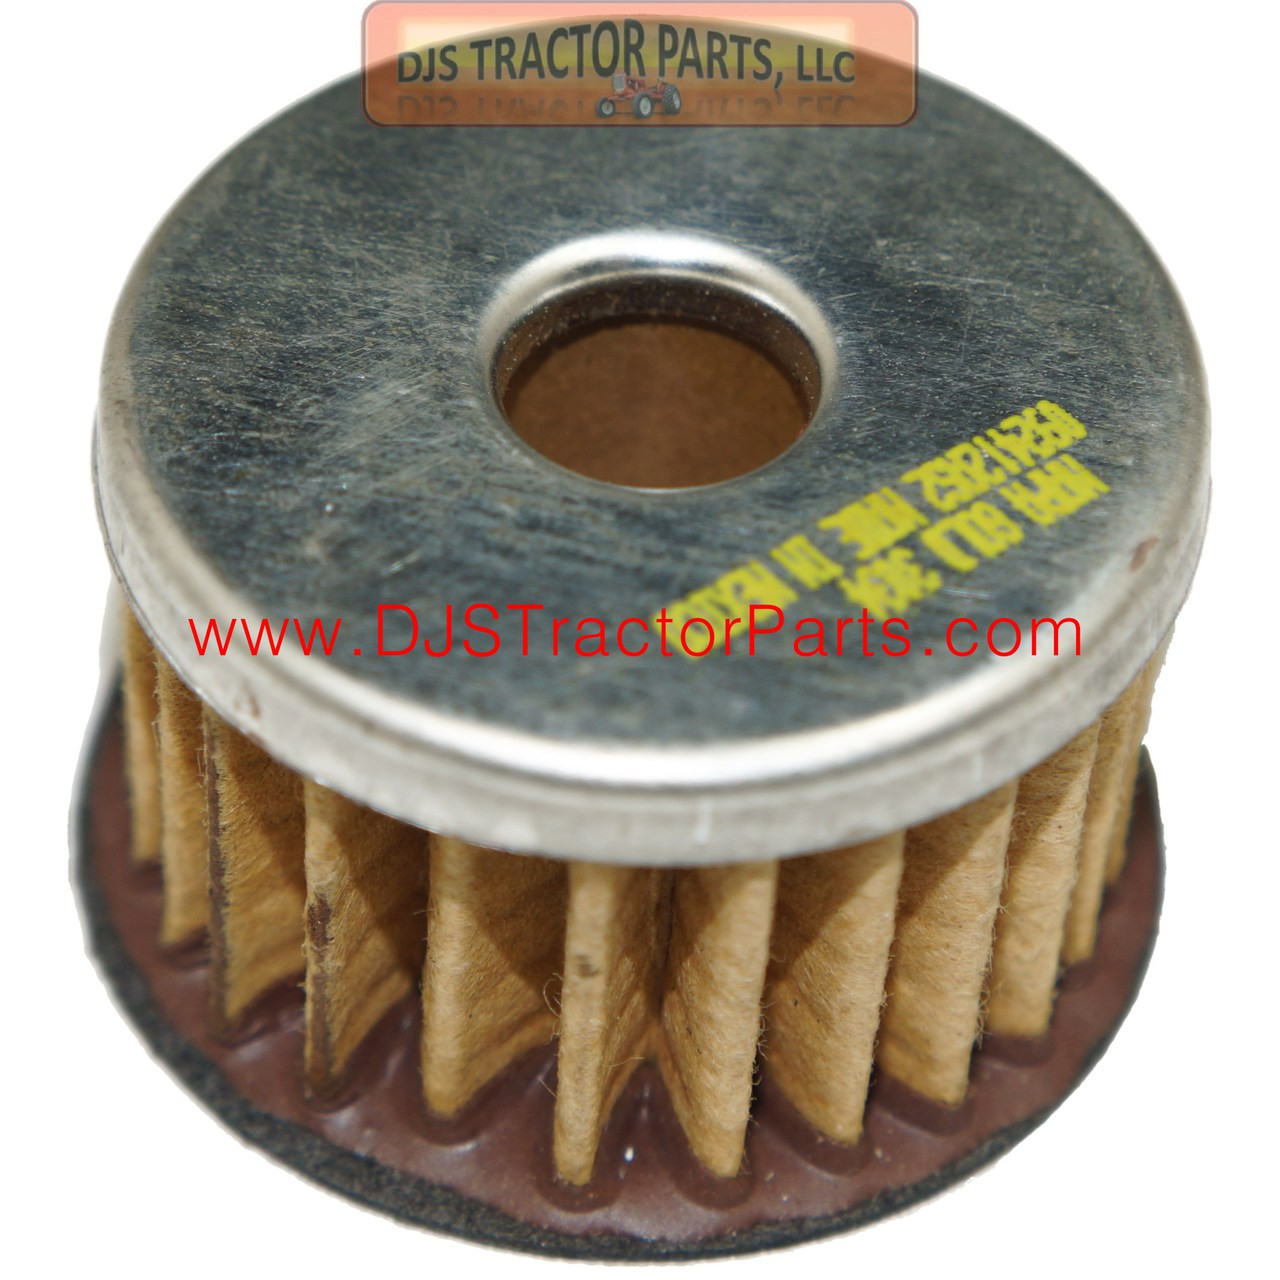 hight resolution of heavy equipment parts attachments sediment bowl fuel filter allis chalmers 170 180 d 15